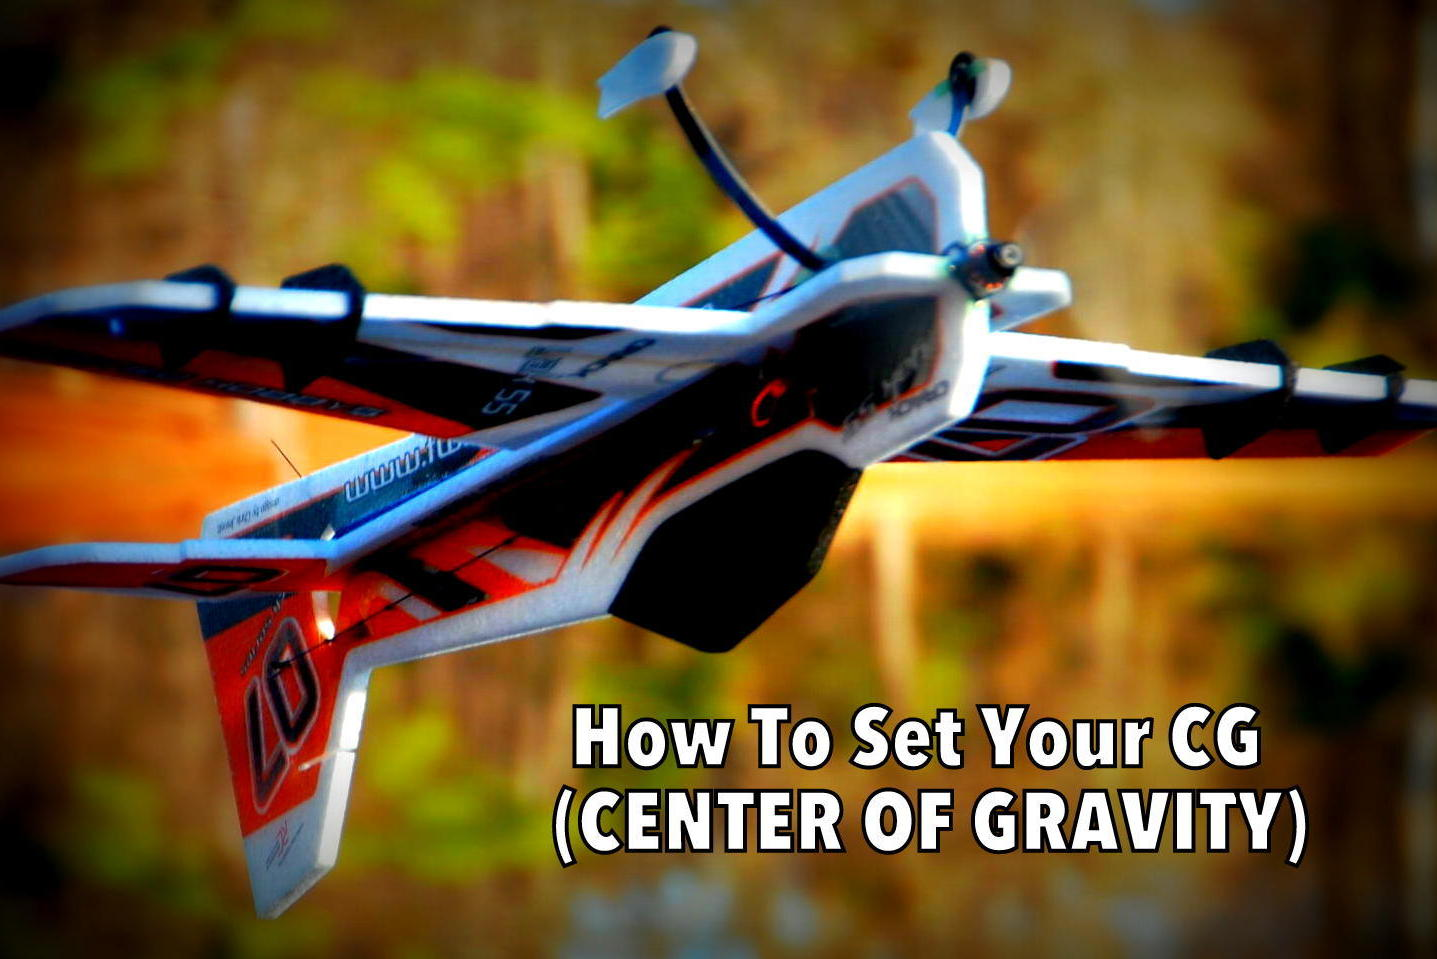 How to Set Center of Gravity on Twisted Hobbys Rc Airplanes